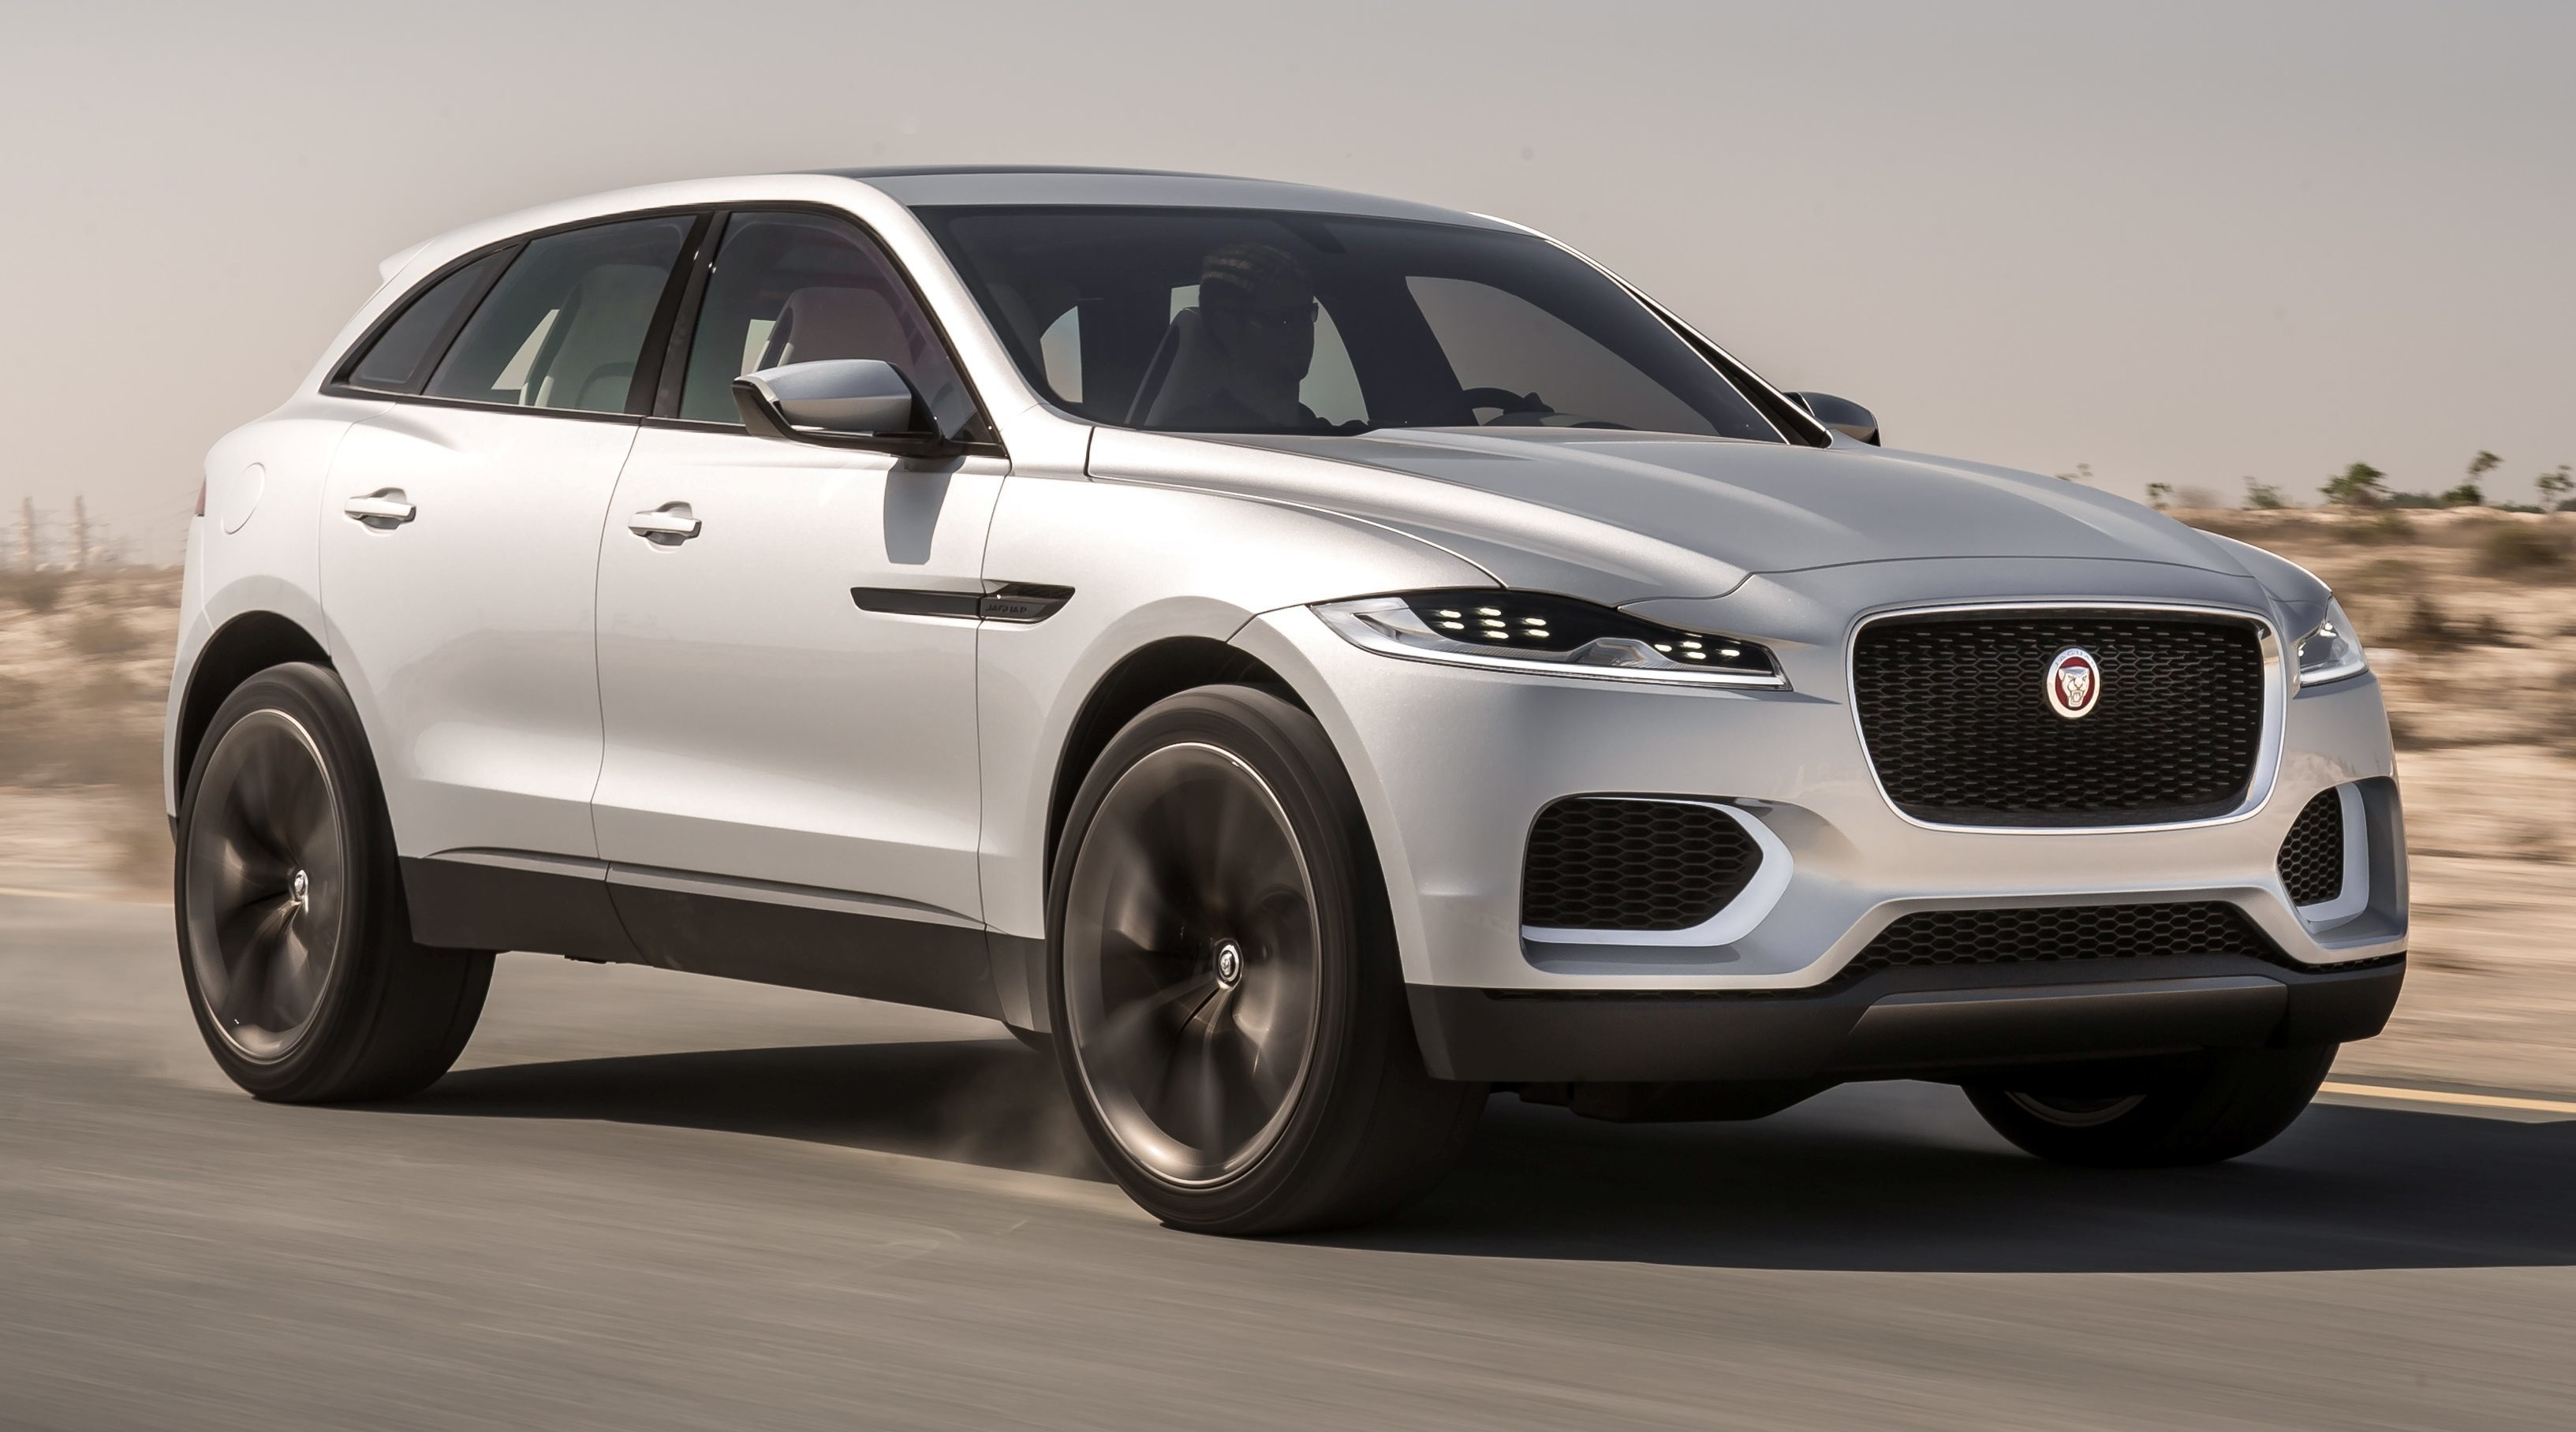 2016 jaguar xq type preview c x17 suv in 150 photos 4 colors from frankfurt la dubai and. Black Bedroom Furniture Sets. Home Design Ideas